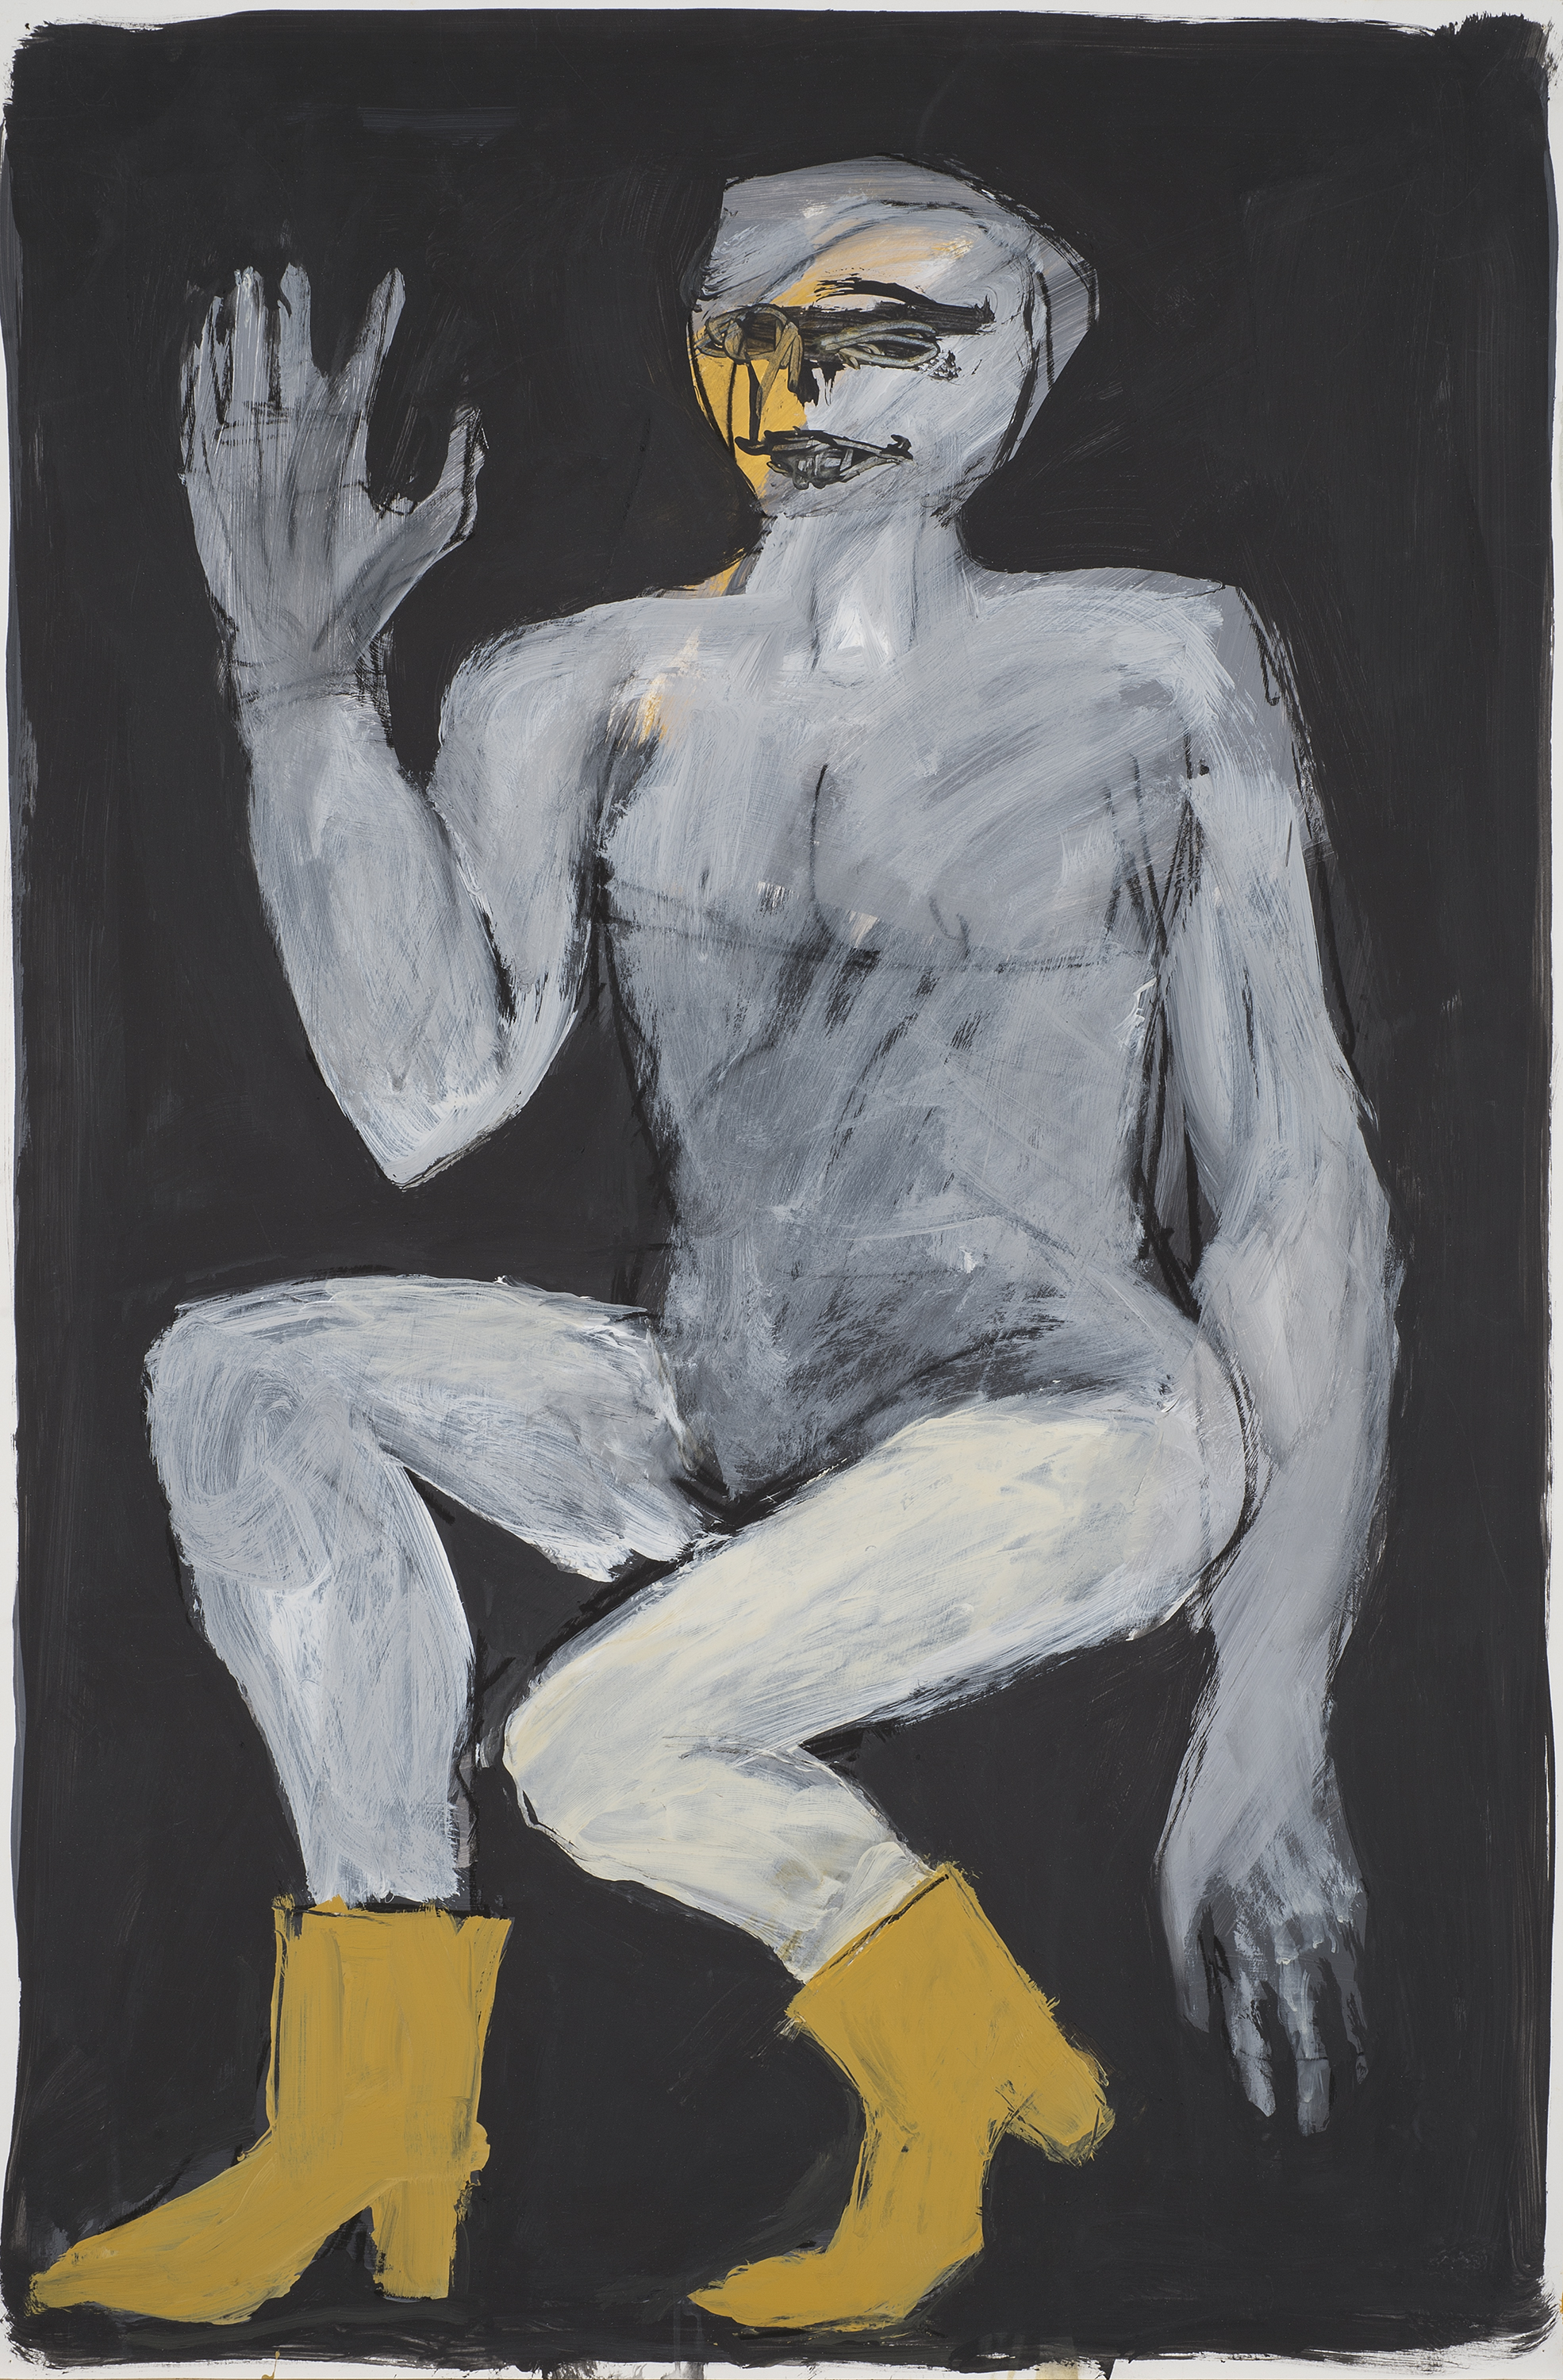 Untitled , 1987. Acrylic on paper, 35 x 23 in (88.9 x 58.4 cm.)